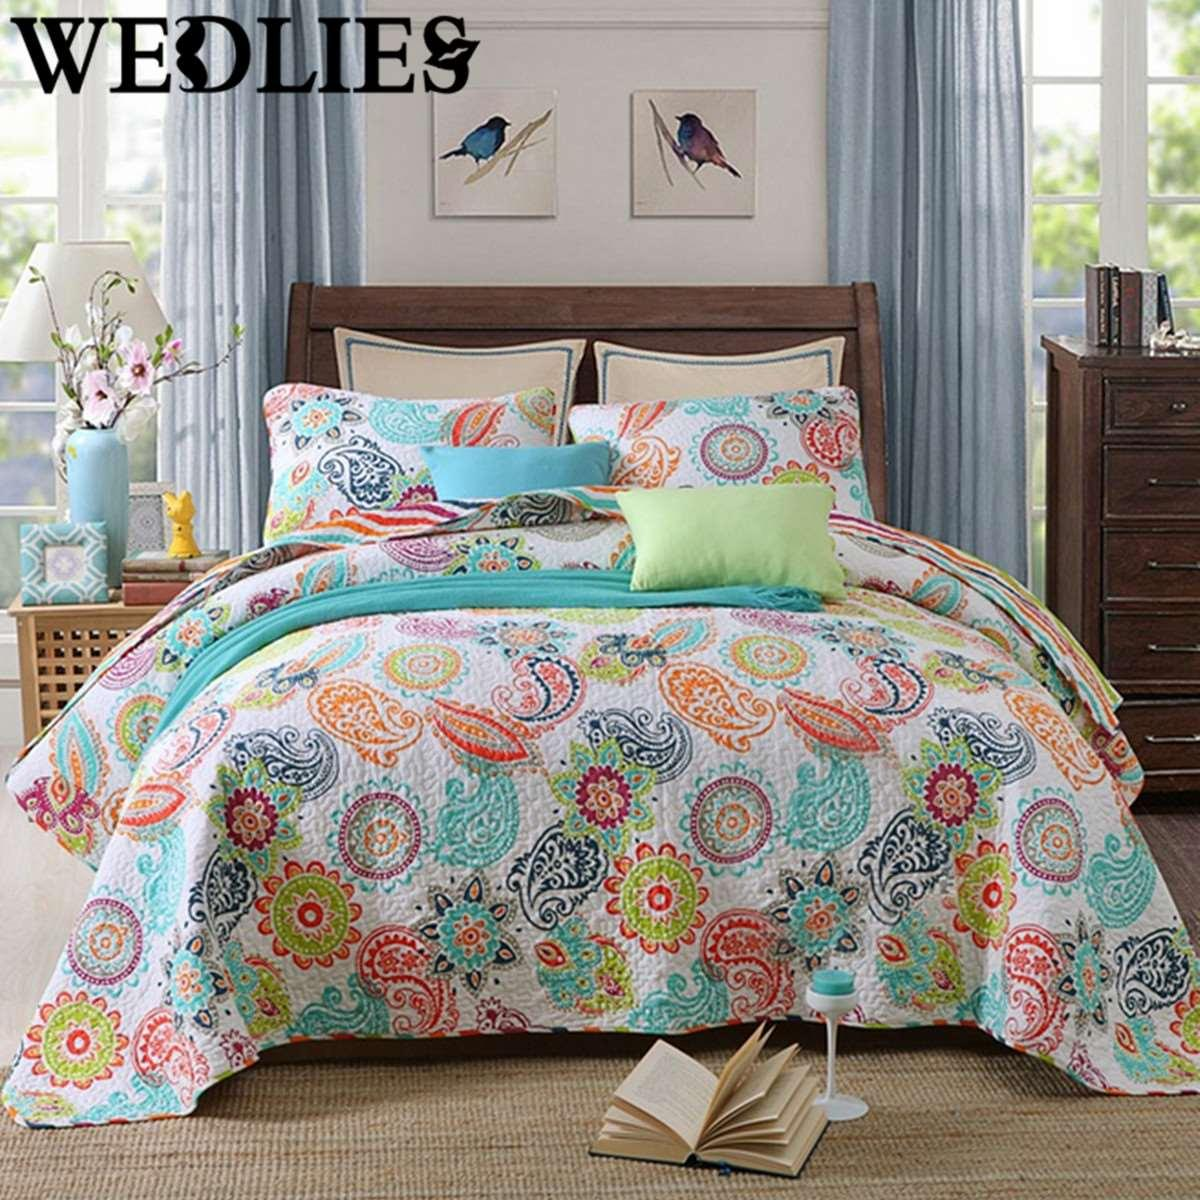 Good Cotton Bedding Set Coverlet Bedspread Patchwork Queen/King Size Paisley  Quilted Home Bedroom Bedding Accessories Bedding And Comforter Sets Bedding  Duvet ...